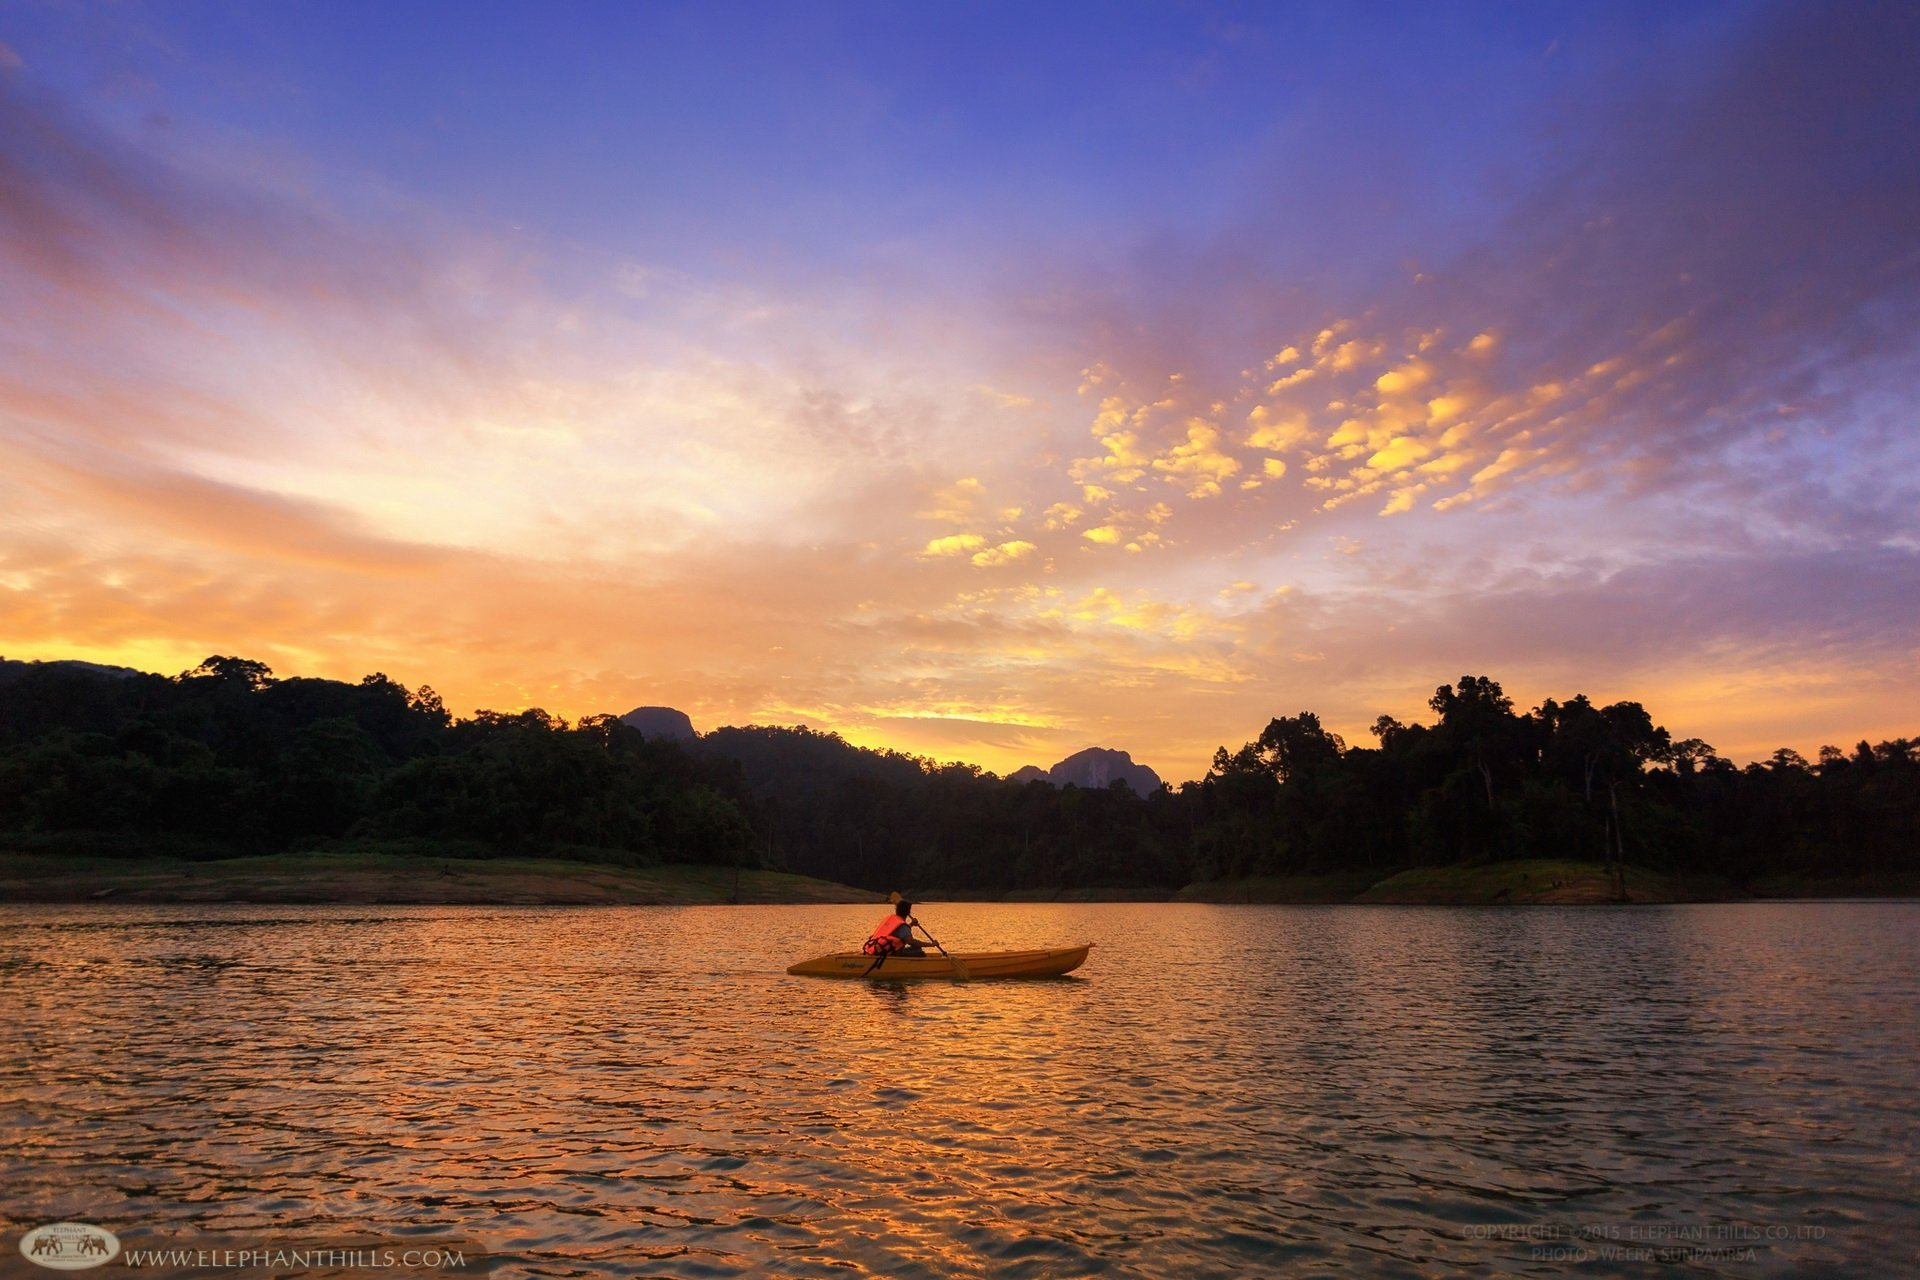 Activities in Khao Sok National Park include kayaking down the river and enjoying breathtaking rainforest views